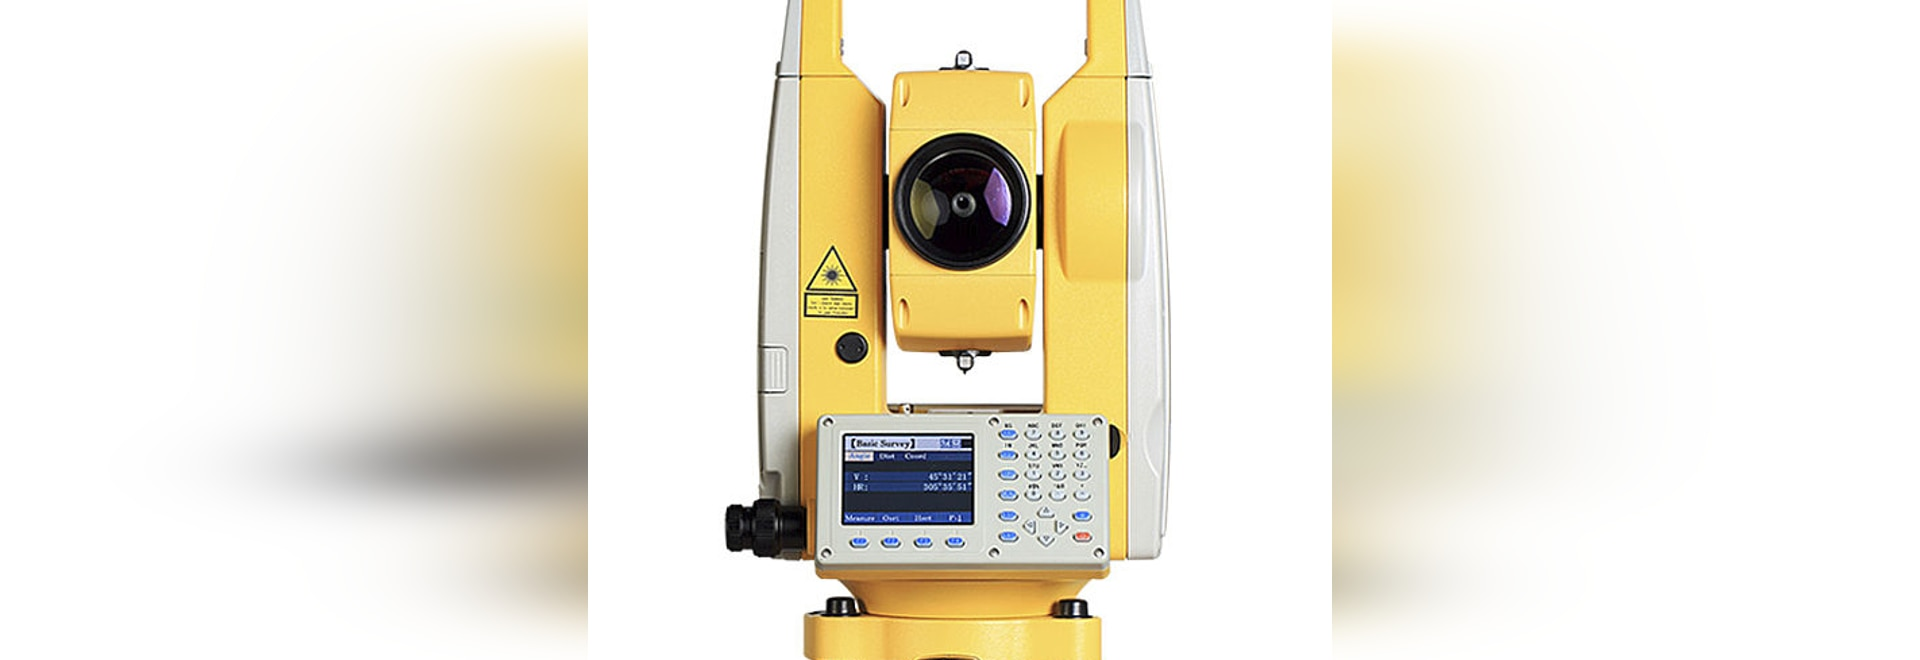 SOUTH/Total Station/reflectorless/automatisches/waterproof/NTS-382R10